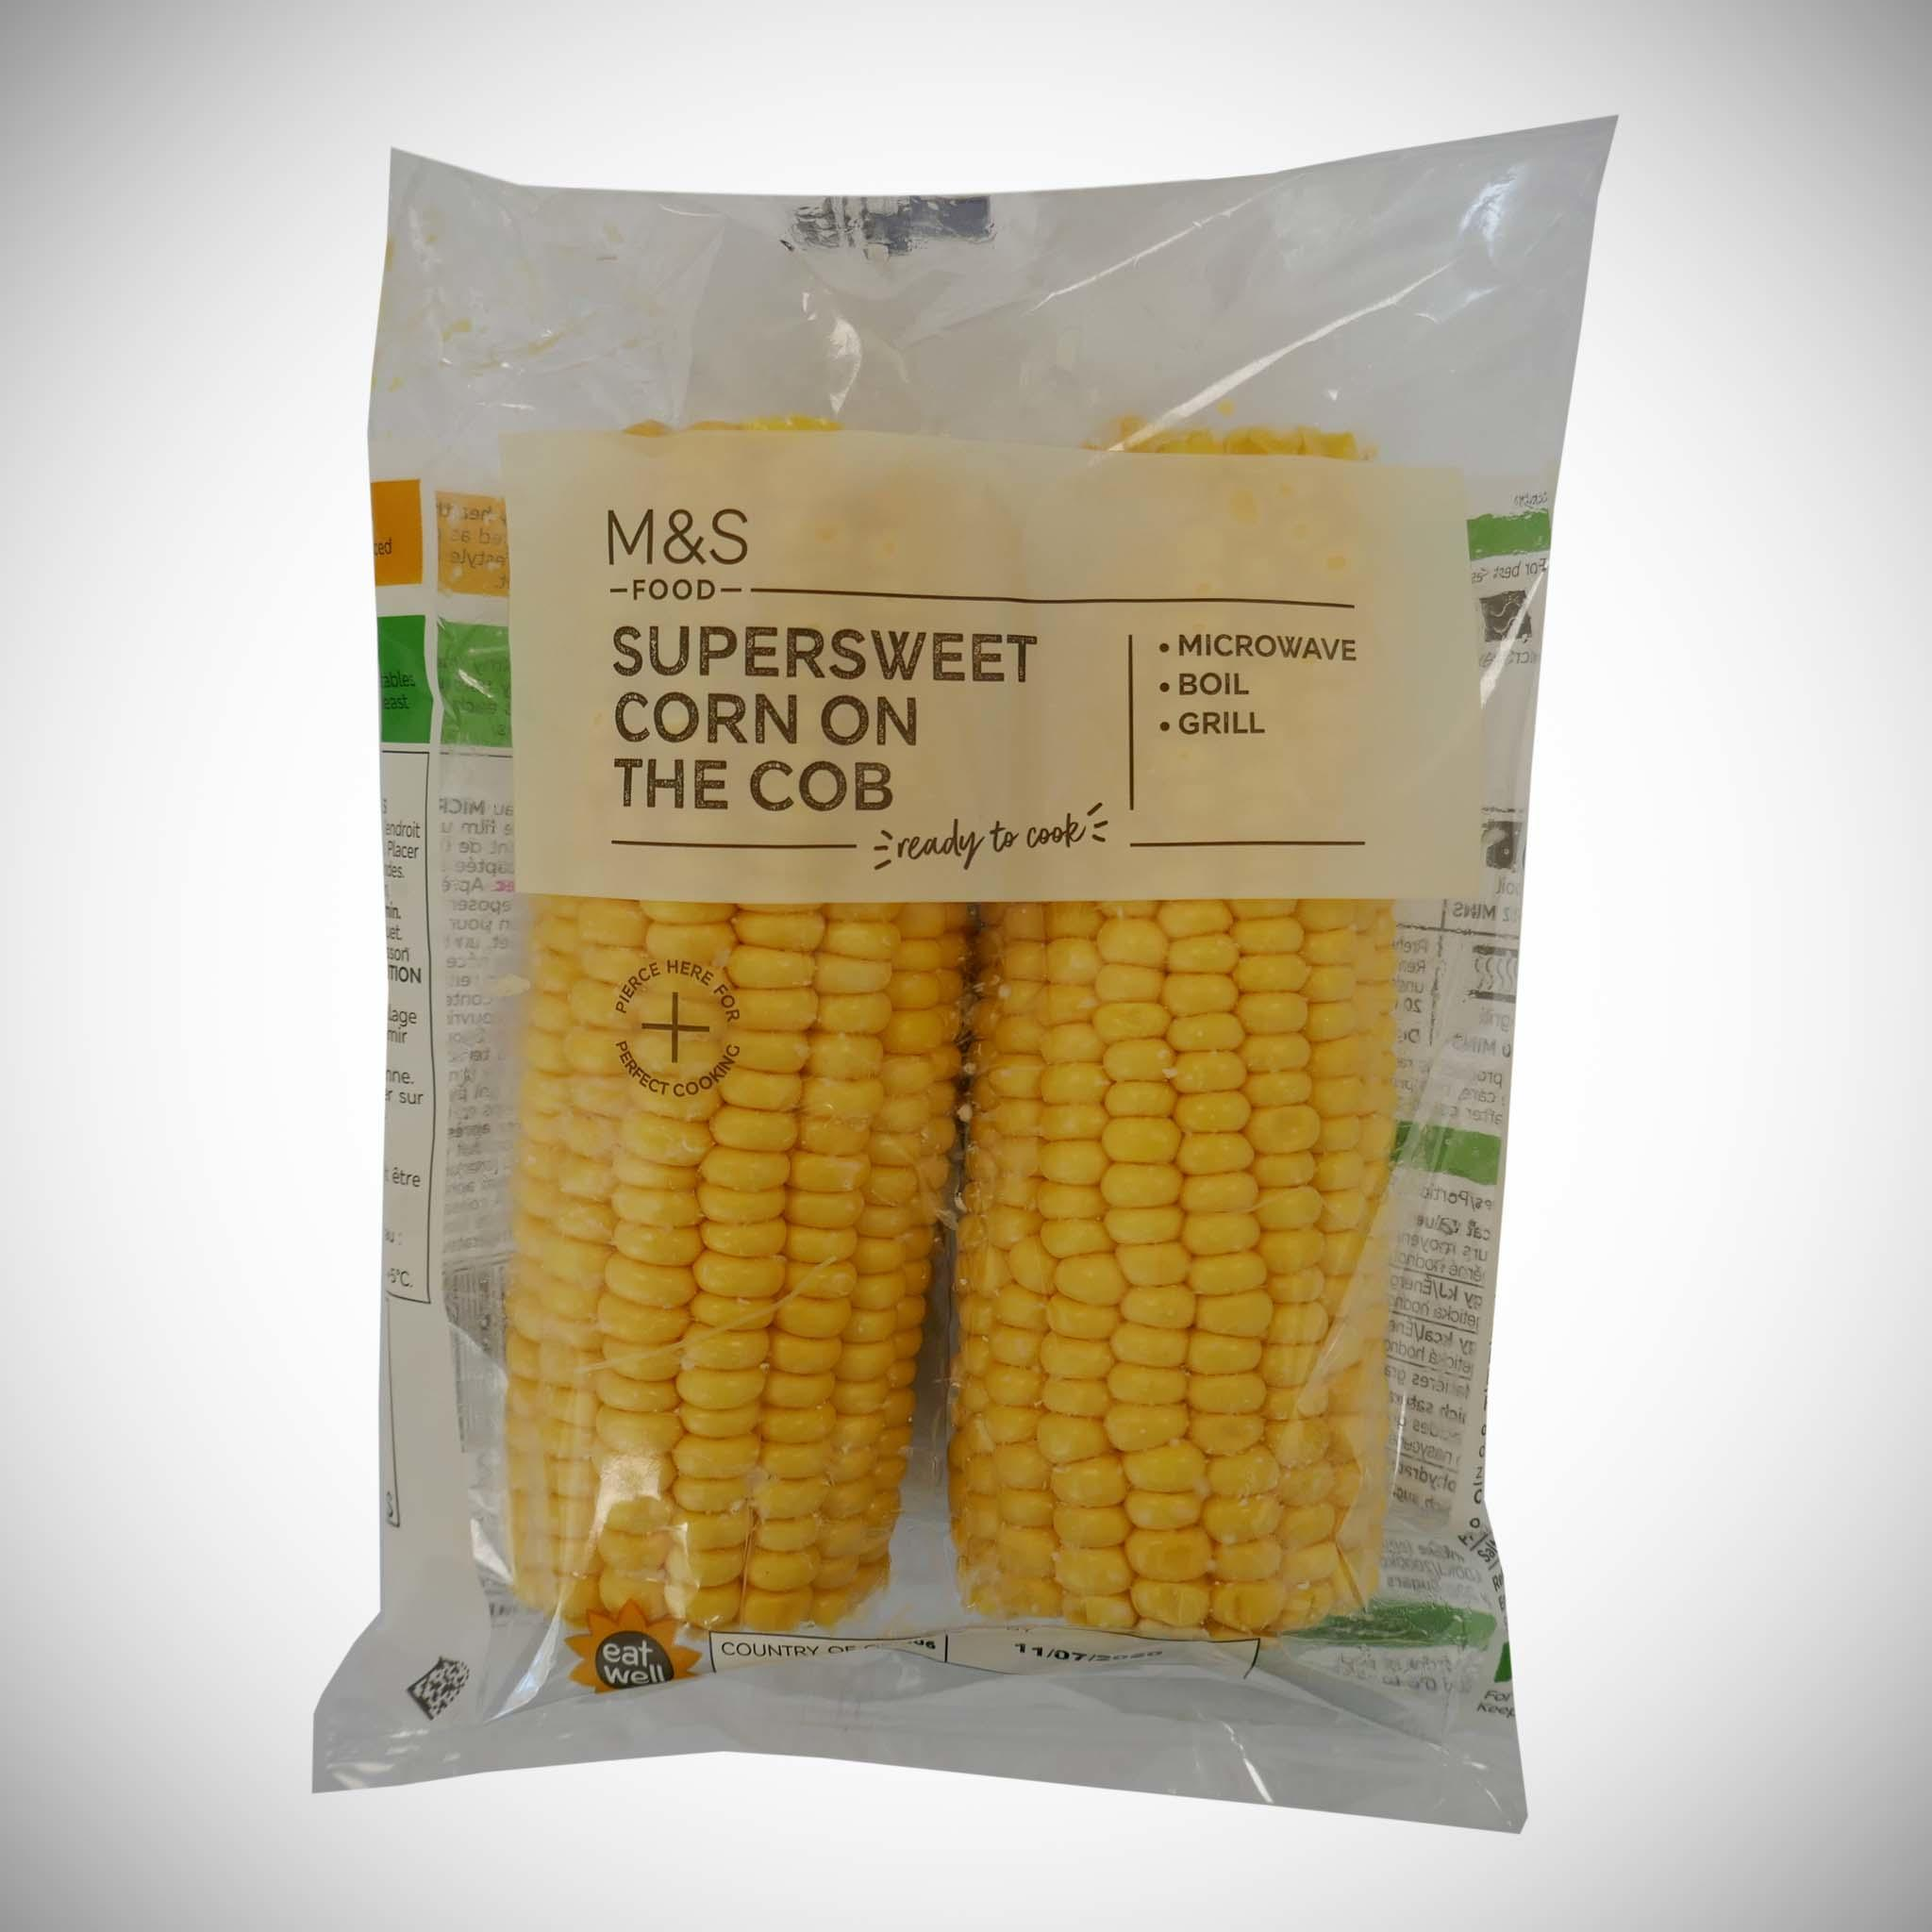 Supersweet Corn on the Cob x 2